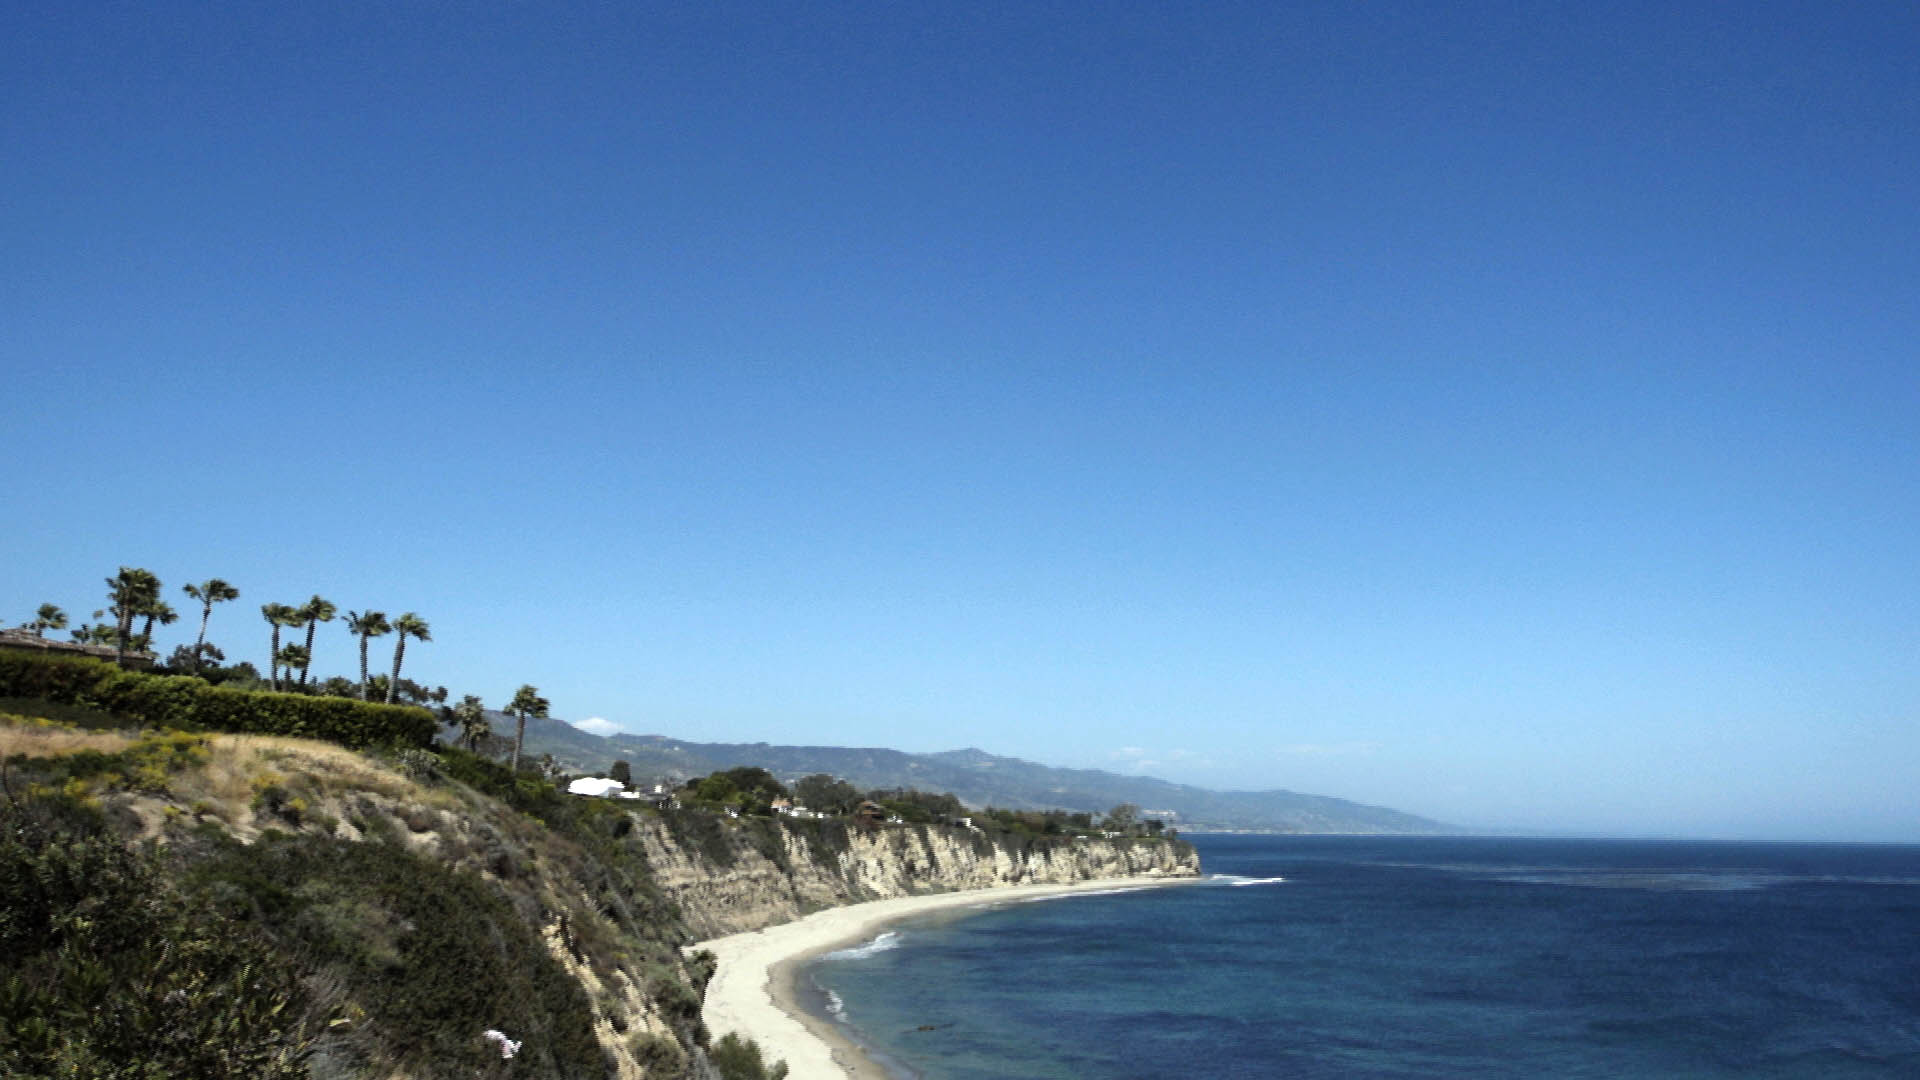 9585199580d01 Best things to do in Malibu, L.A.'s best beach town | CNN Travel